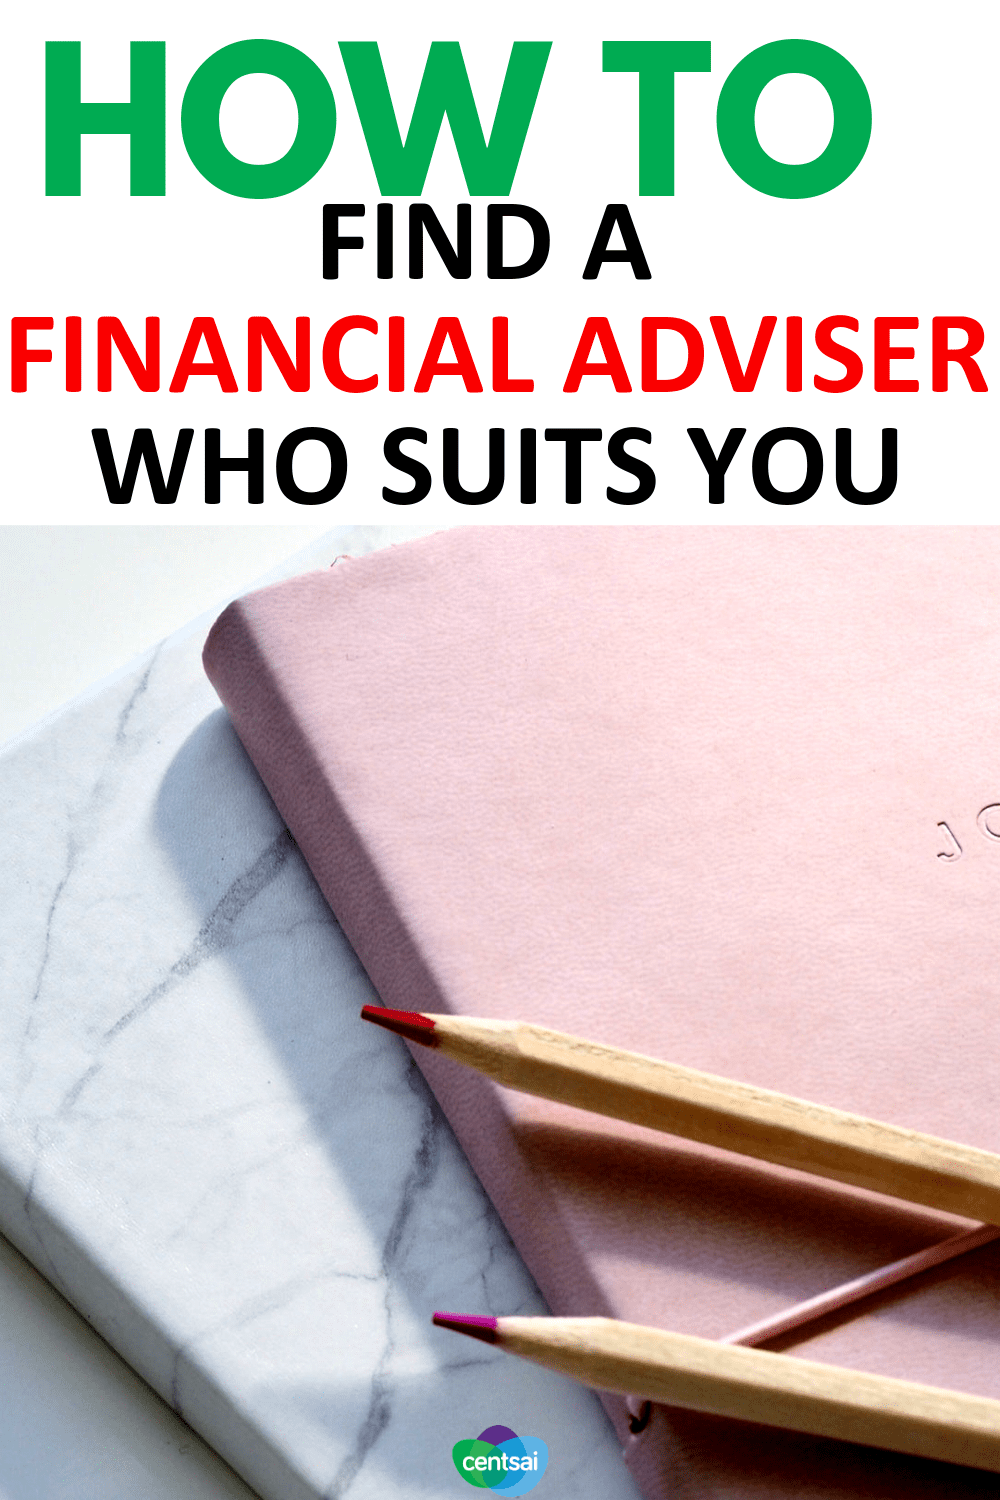 How to Find a #FinancialAdviser Who Suits You. Make sure that you're getting the best #financialadvice possible. Get the lowdown on how to find a financial adviser who fits your needs. #personalfinance #tips